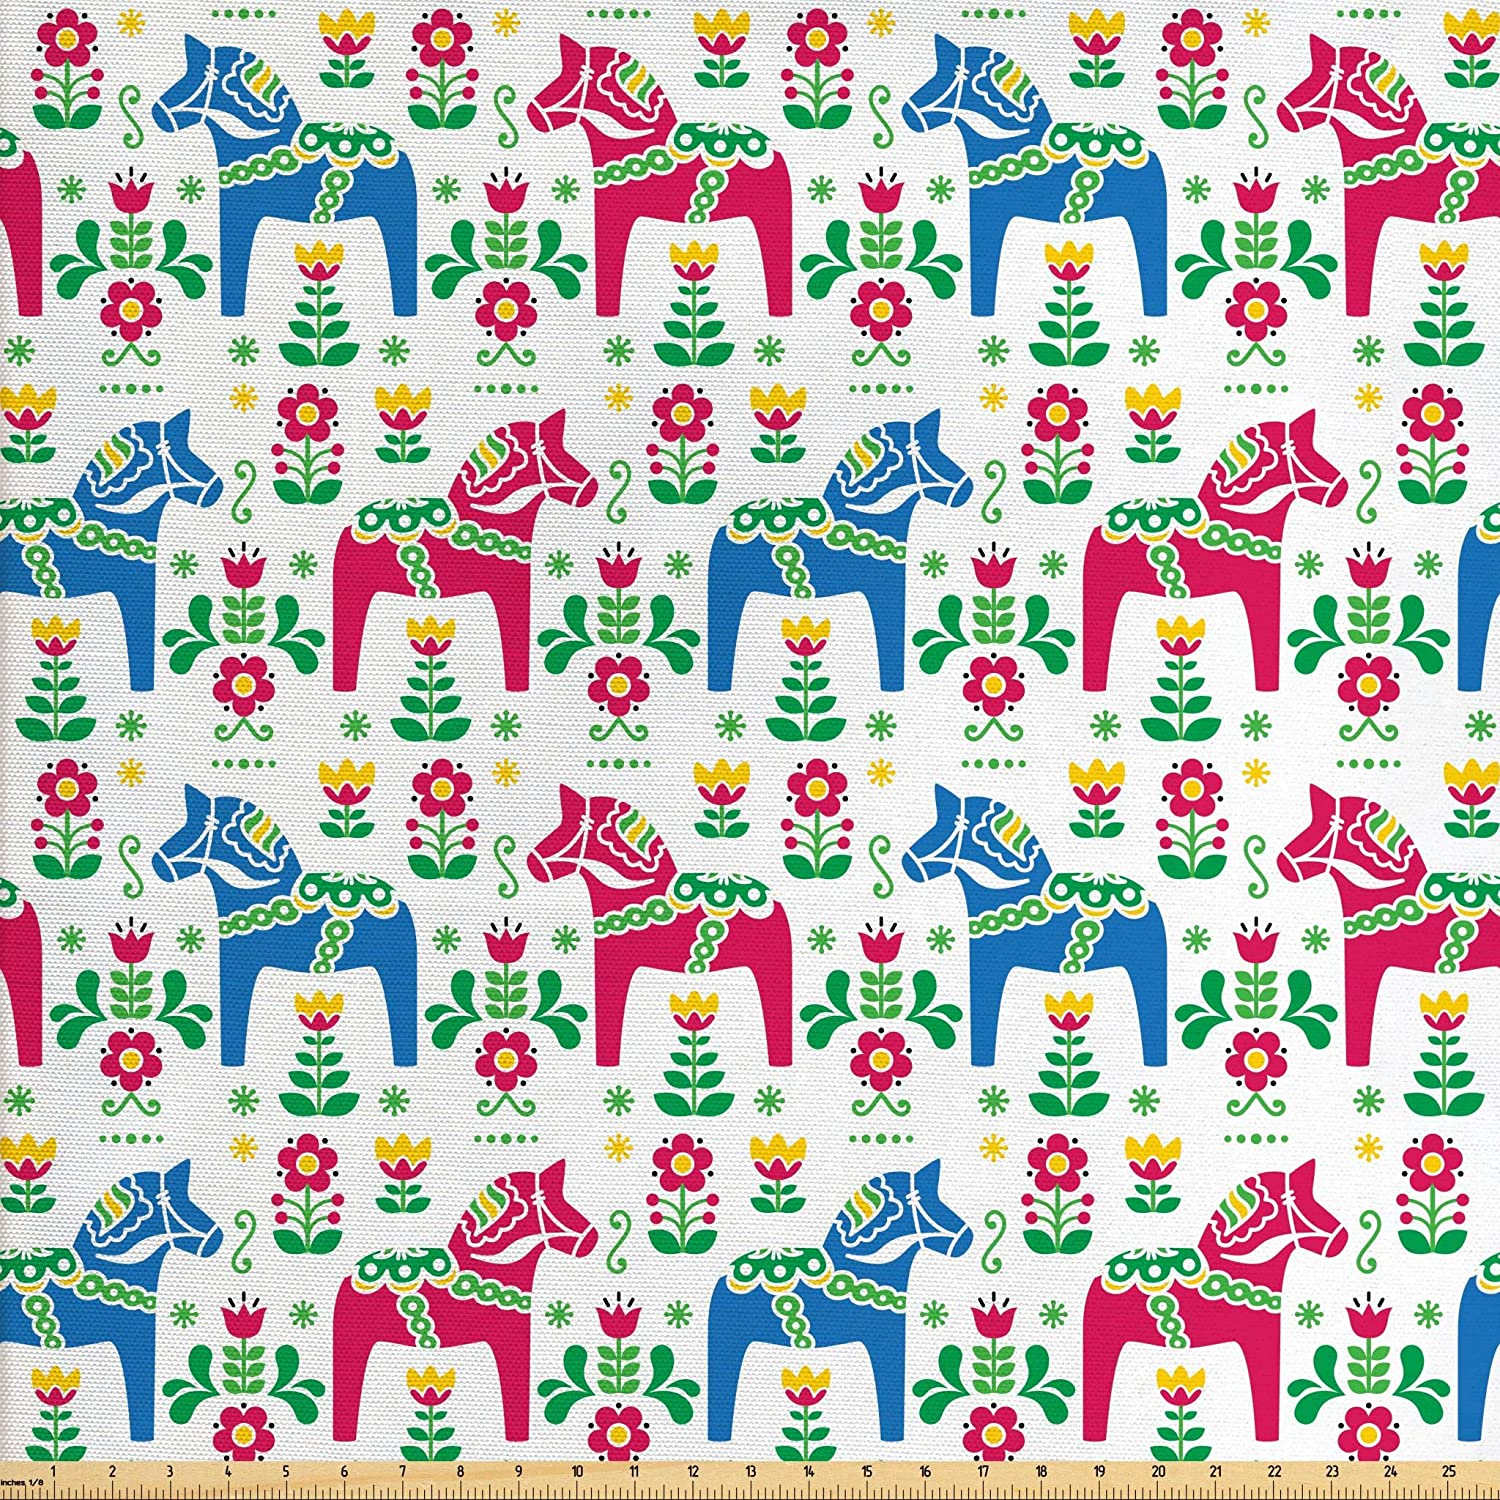 Ambesonne Horses Fabric by The Yard, Classic Swedish Dalecarlian Coral Azure Blue Animals and Green Floral Arrangement, Decorative Fabric for Upholstery and Home Accents, 3 Yards, Pink Blue